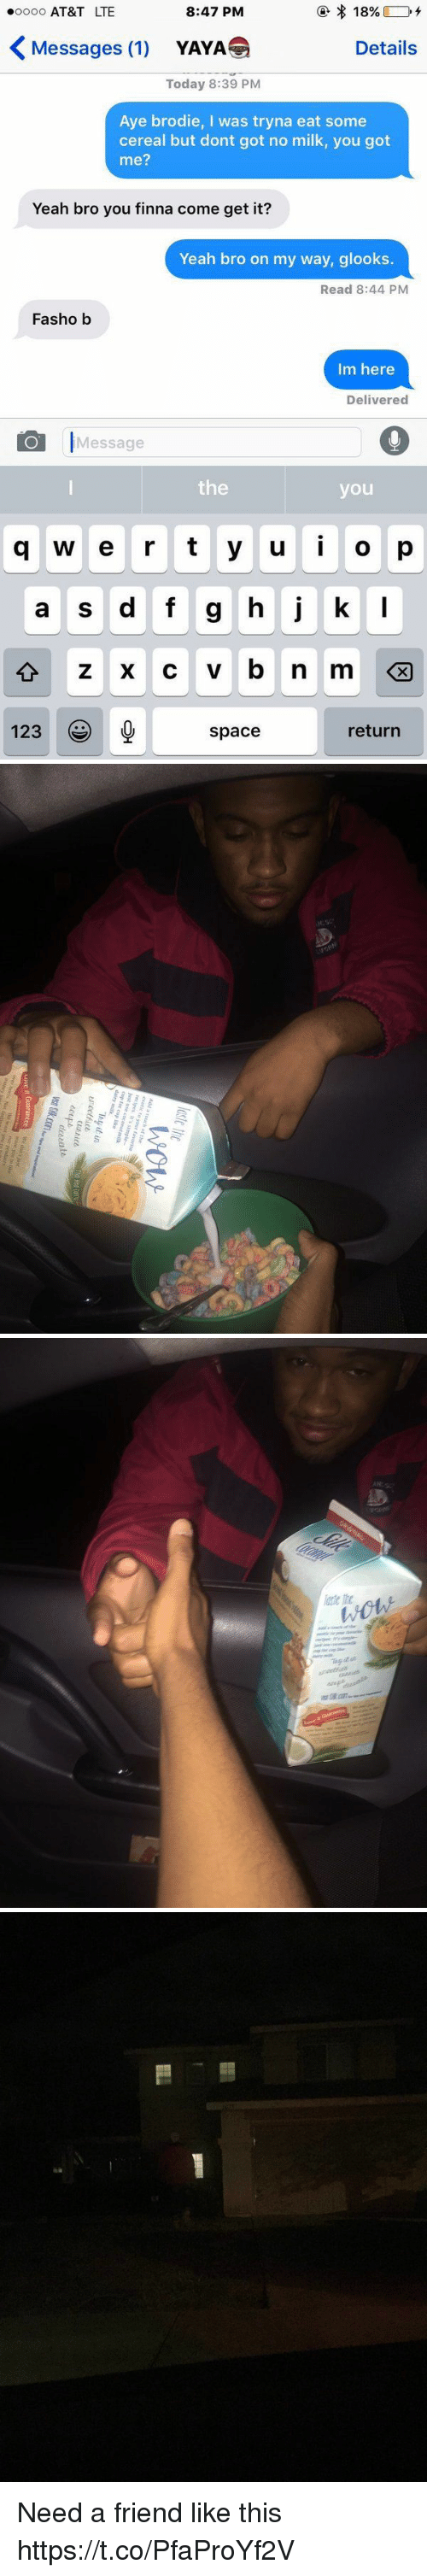 "Funny, Love, and Wow: 18%  8:47 PM  ooooo AT&T LTE  Messages (1)  Details  YAYA  Today 8:39 PM  Aye brodie, I was tryna eat some  cereal but dont got no milk, you got  me?  Yeah bro you finna come get it?  Yeah bro on my way, glooks  Read 8:44 PM  Fasho b  Im here  Delivered  Message  the  you  g w e r t y u i o p  a s d f g h j k  l  123  return  space   lastc ite  wow  Add a touche of the  favorite  Justusers-simple.. 결..  recig es It's simple-  just use coconutmilk  cup like  dairy makThy it  ""Iny it in  uact fied  ualitb  Fdewate  Vst Sgkcon-and  Love It Guarantee  ran tee  we don't just   agiEss  anaeroes  era corn. Need a friend like this https://t.co/PfaProYf2V"